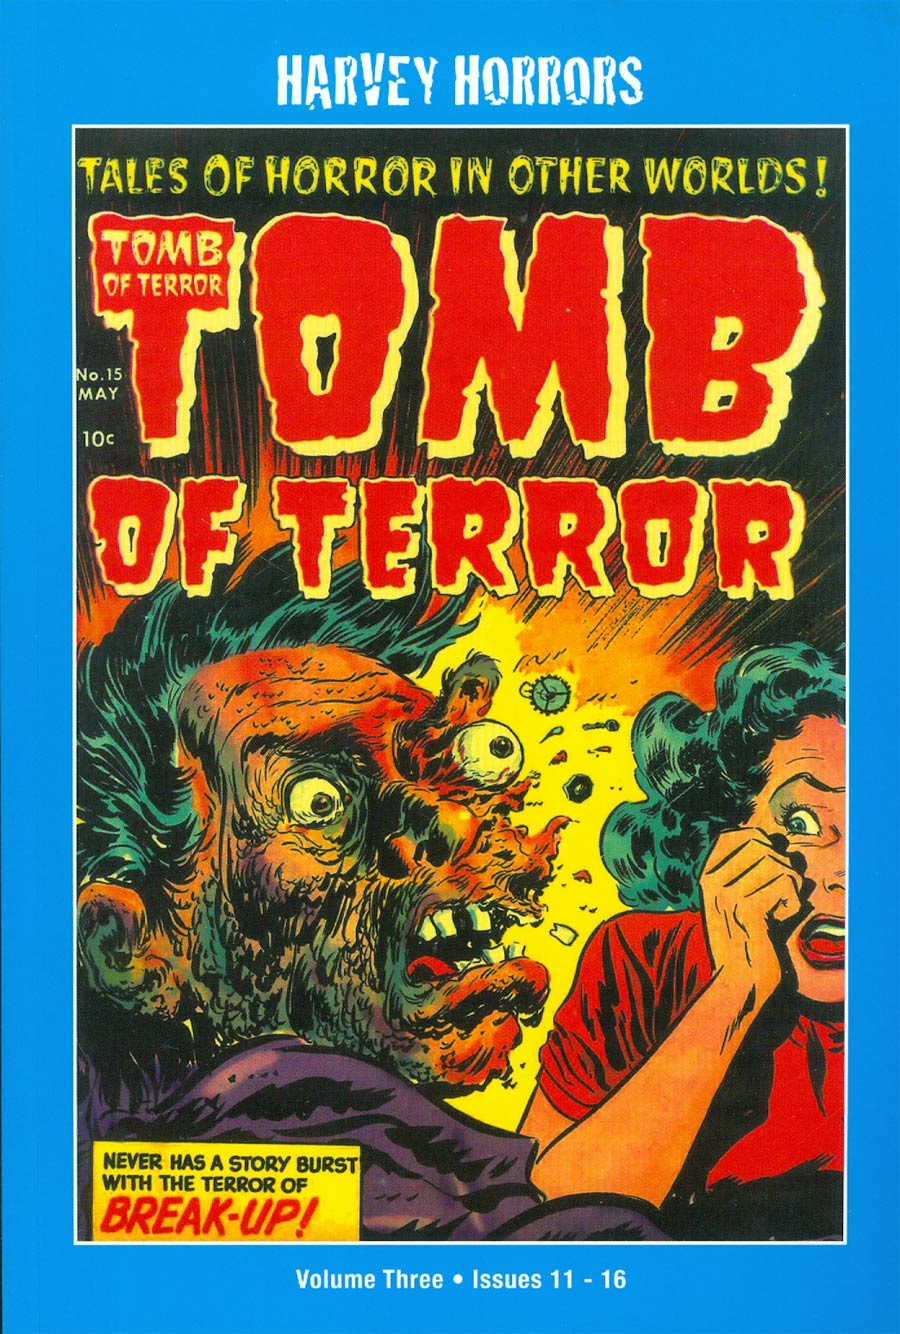 Harvey Horrors Collected Works Tomb Of Terror Softie Vol 3 TP